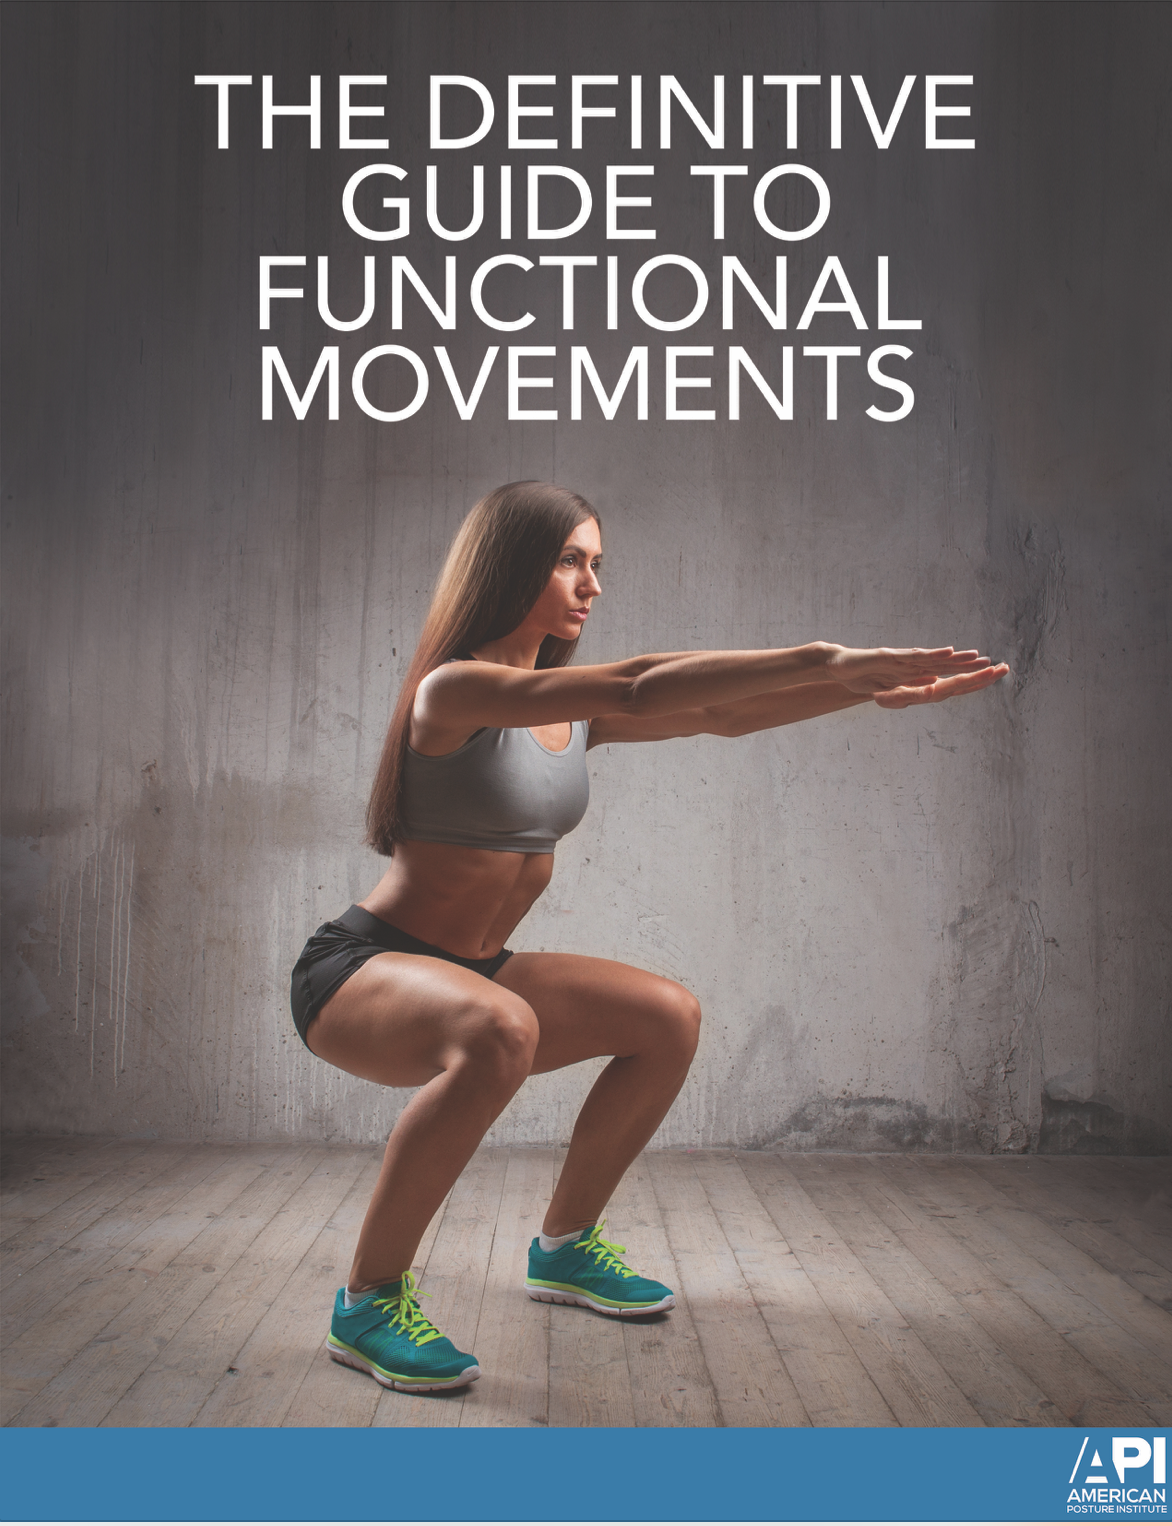 9 Page guide covering how to analyze functional movements in your office.